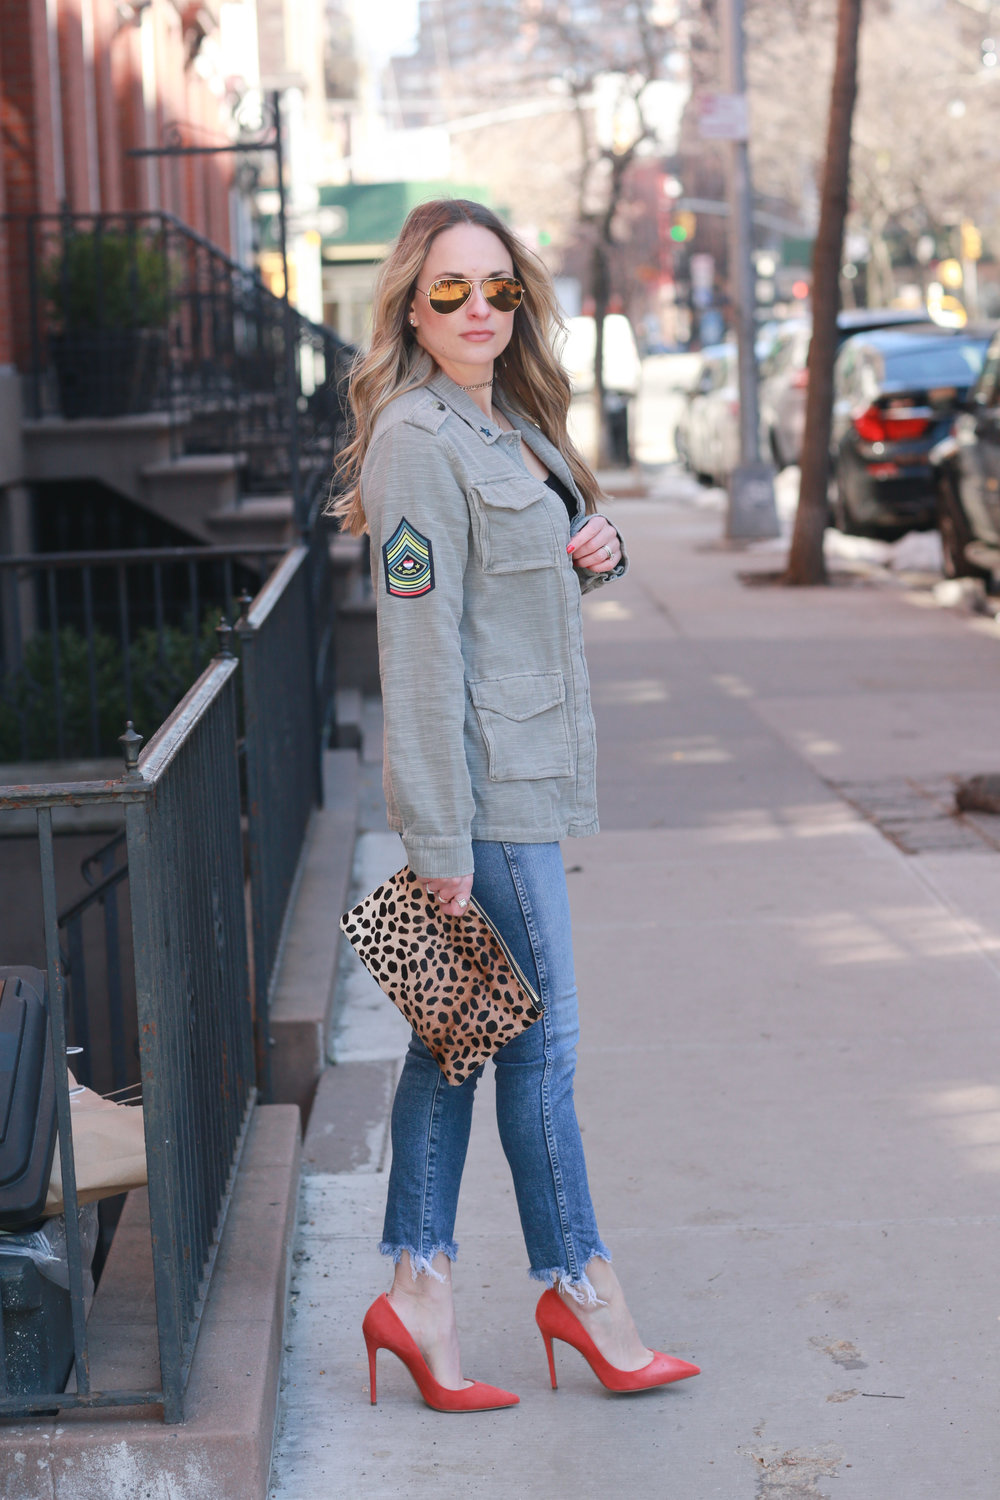 military jacket with patches